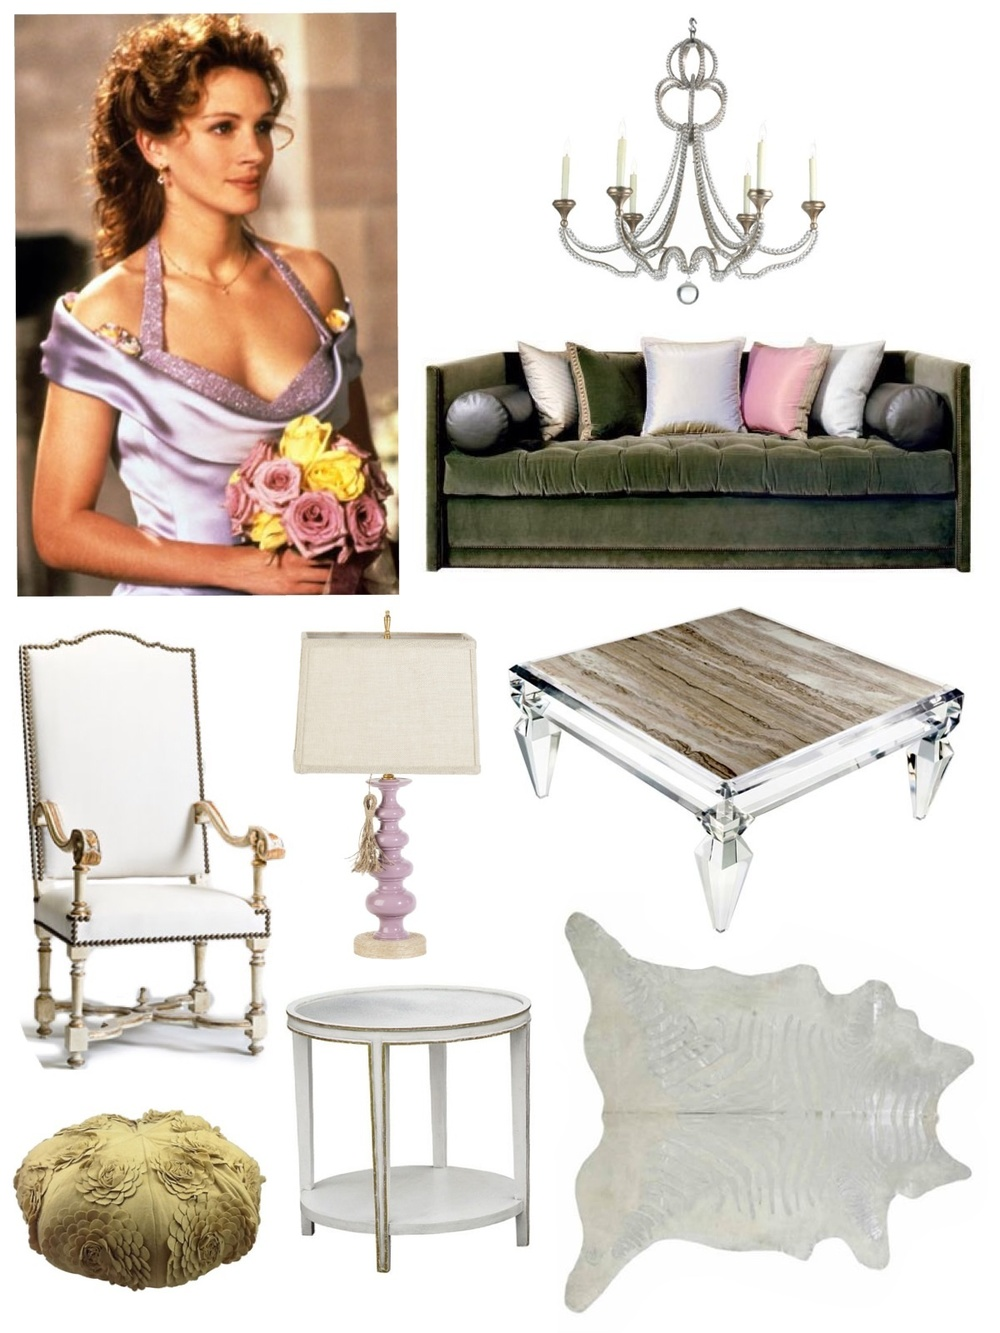 Image: Julia Roberts in My Best Friend's Wedding. Though this film is beginning to get a little dated, these misty pastel colors are actually quite current. We took inspiration from Julia's dress and flowers, and created a feminine space fit for the most sophisticated client. Available through Savvy: lamp, side table, metallic hide rug, floral pouf / Chair: Tara Shaw / Chandelier: Niermann Weeks / Sofa: John Saladino Kimberly Kowalski, Allied ASID